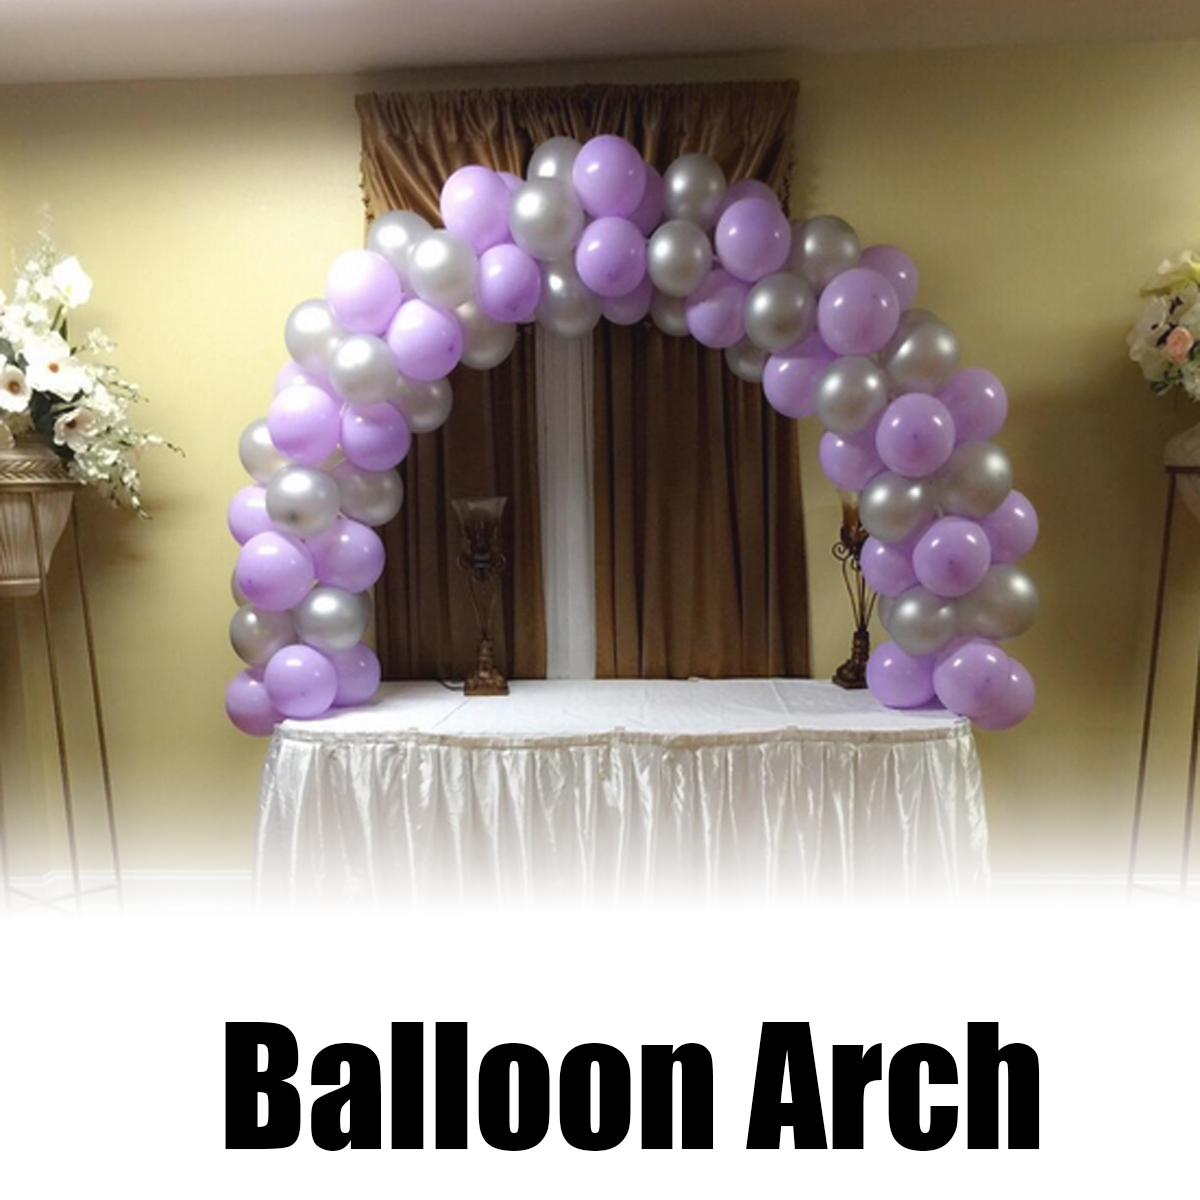 Metal Table Balloons Arch Frame Kit Good Decorations For Wedding Birthday Party Steel Accessories Events Supplies